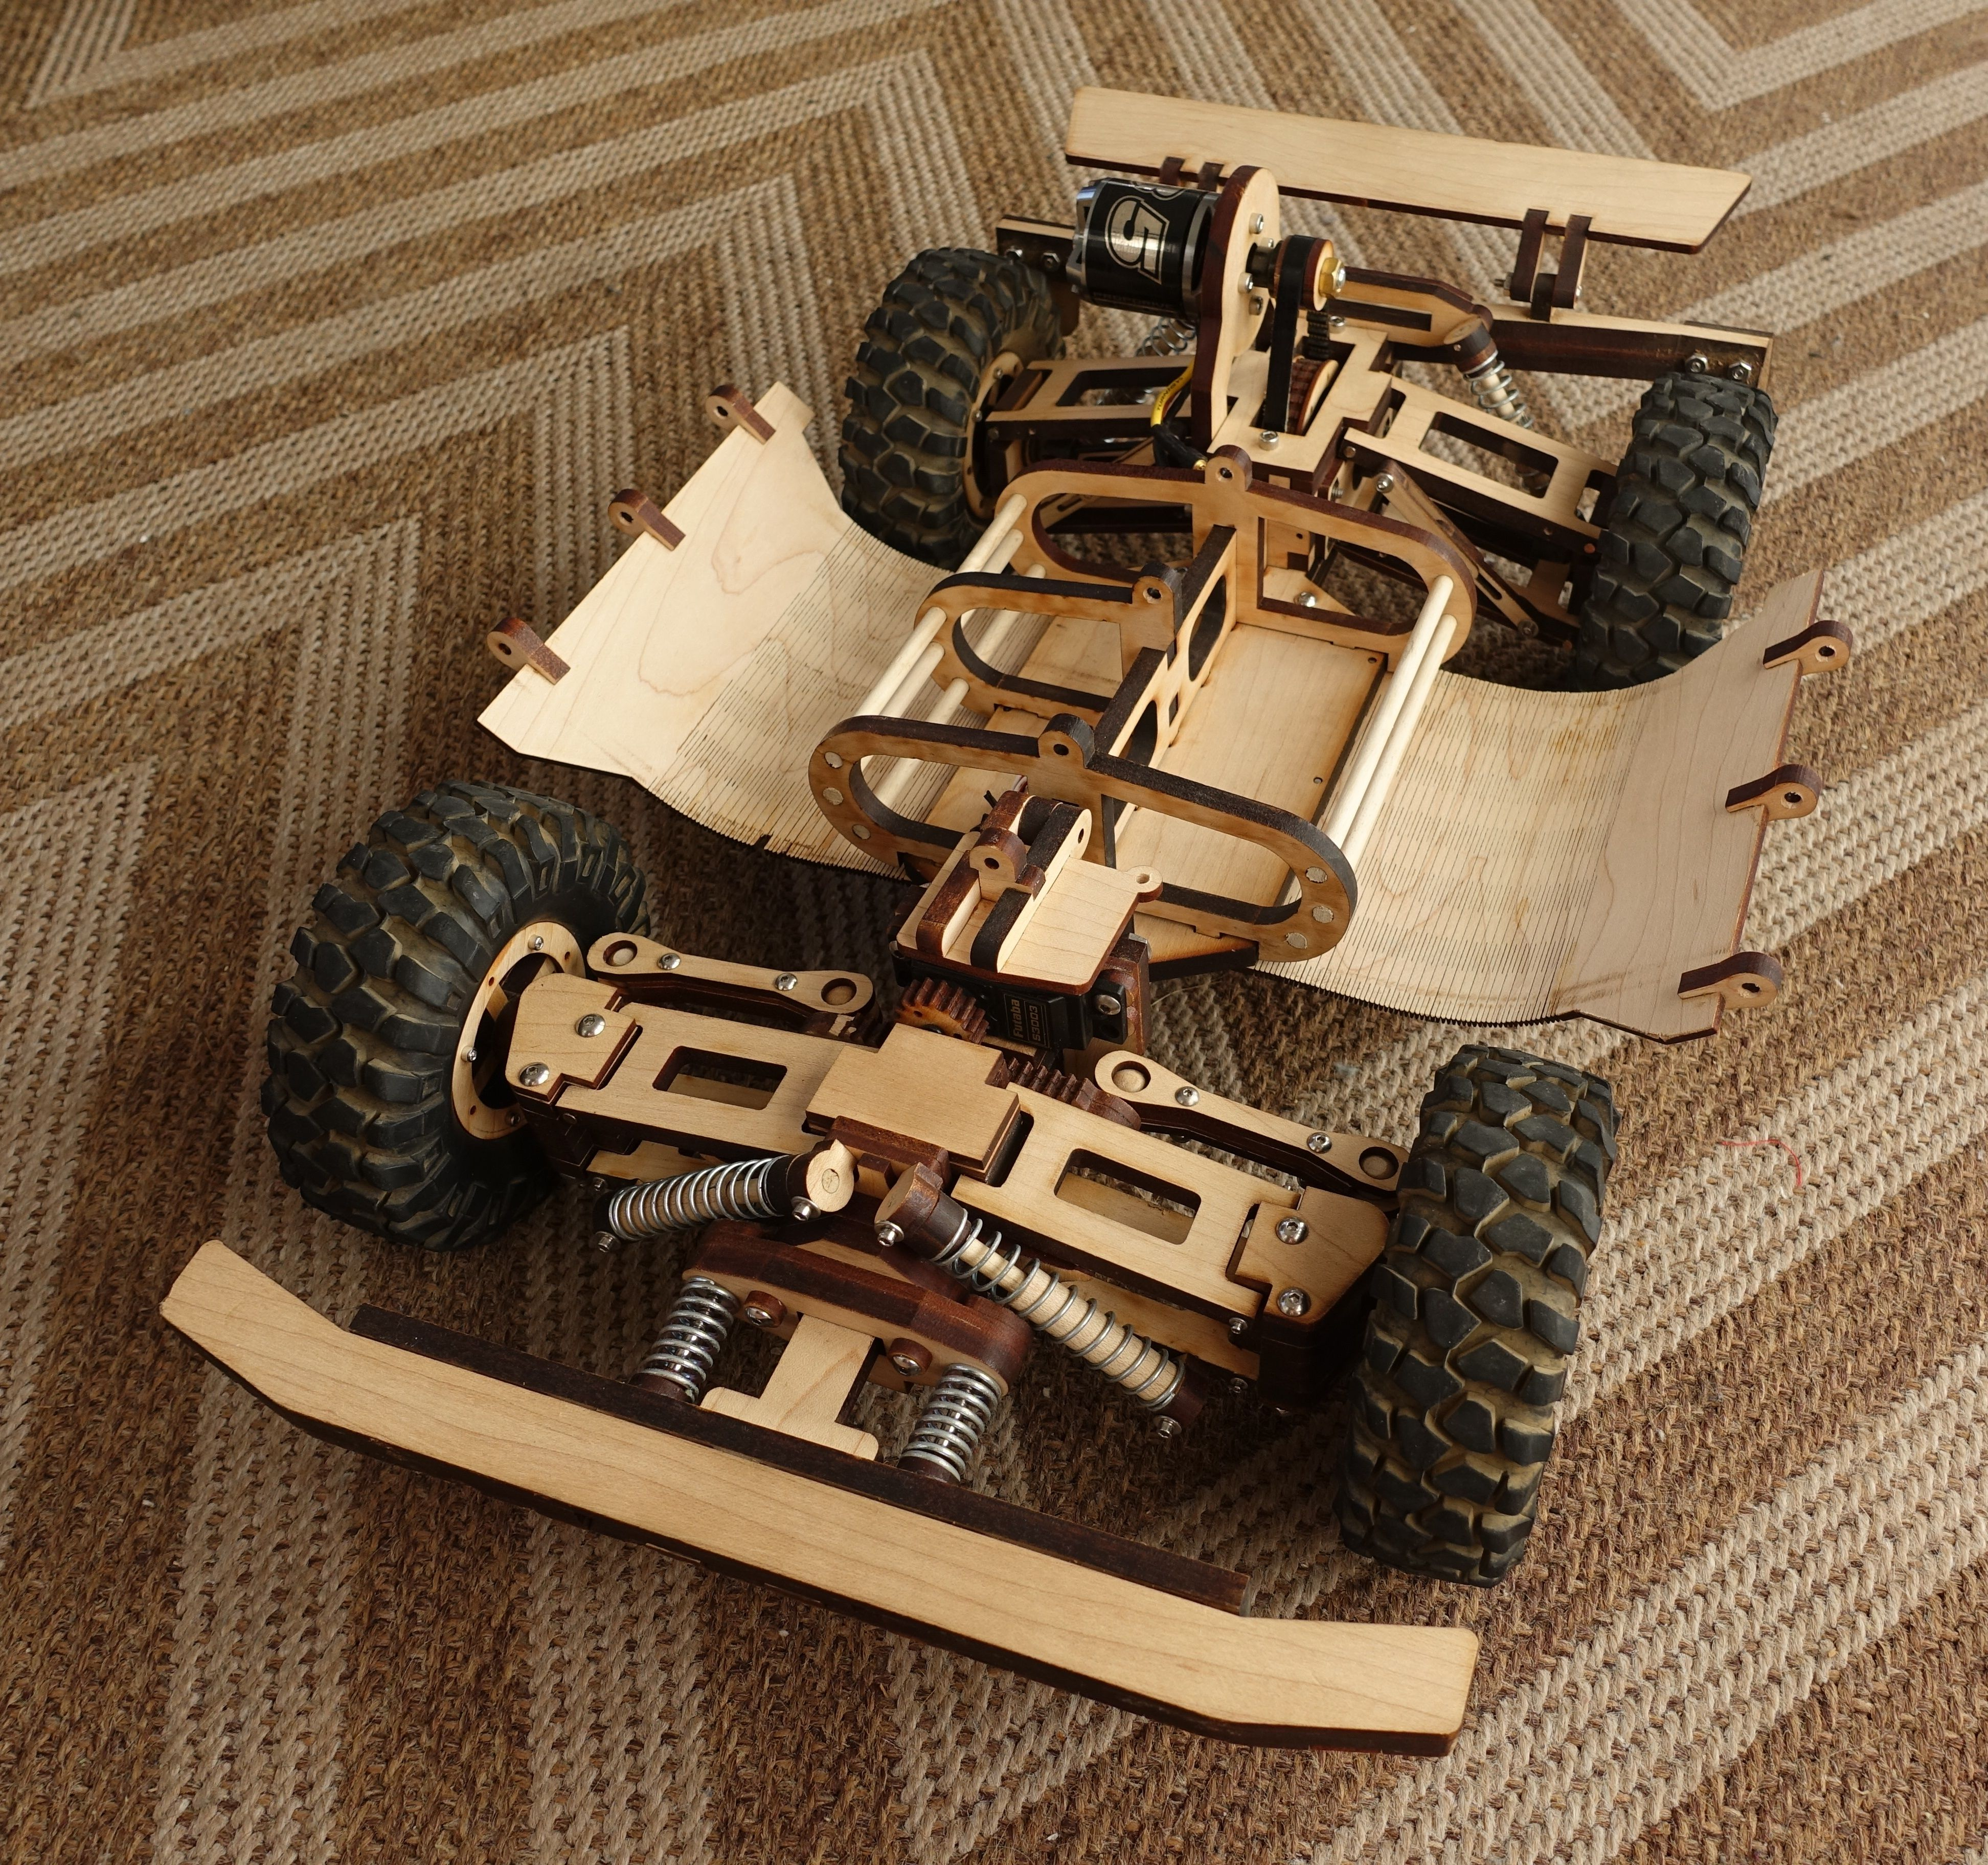 Undefined Laser Cutting Projects To Try Rc Cars Diy